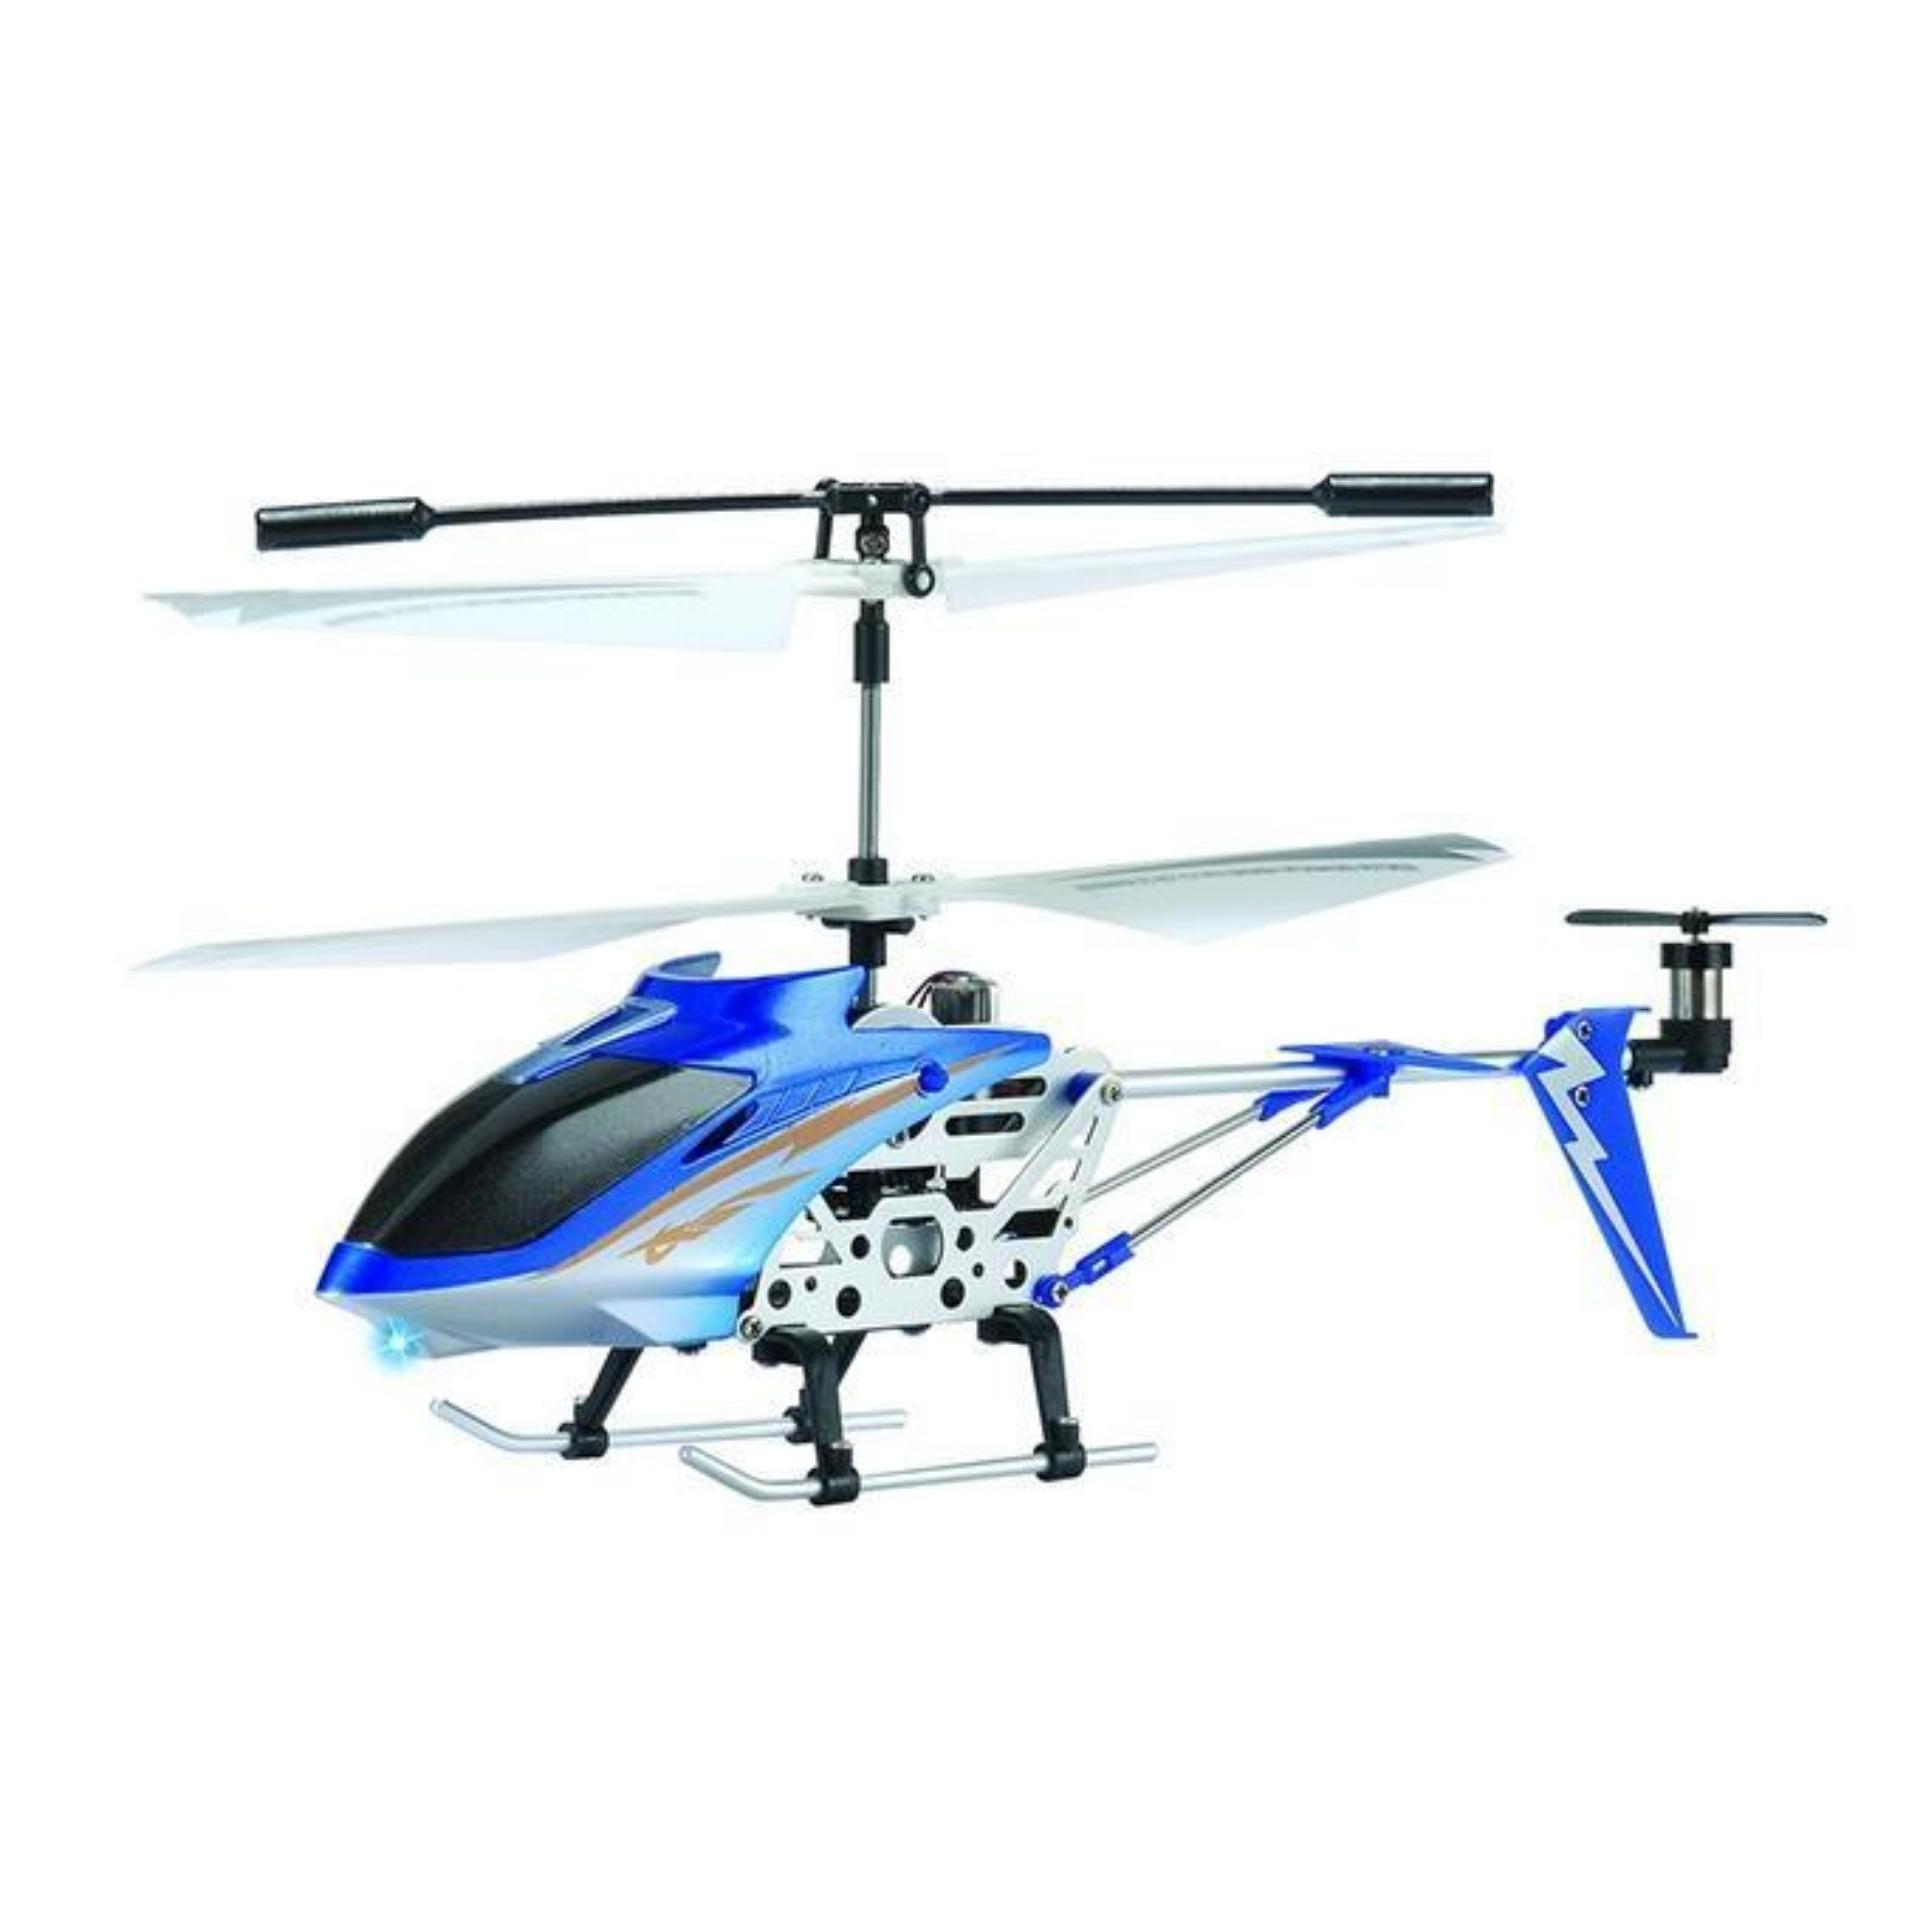 High Speed Swift S2 Helicopter - Blue and White